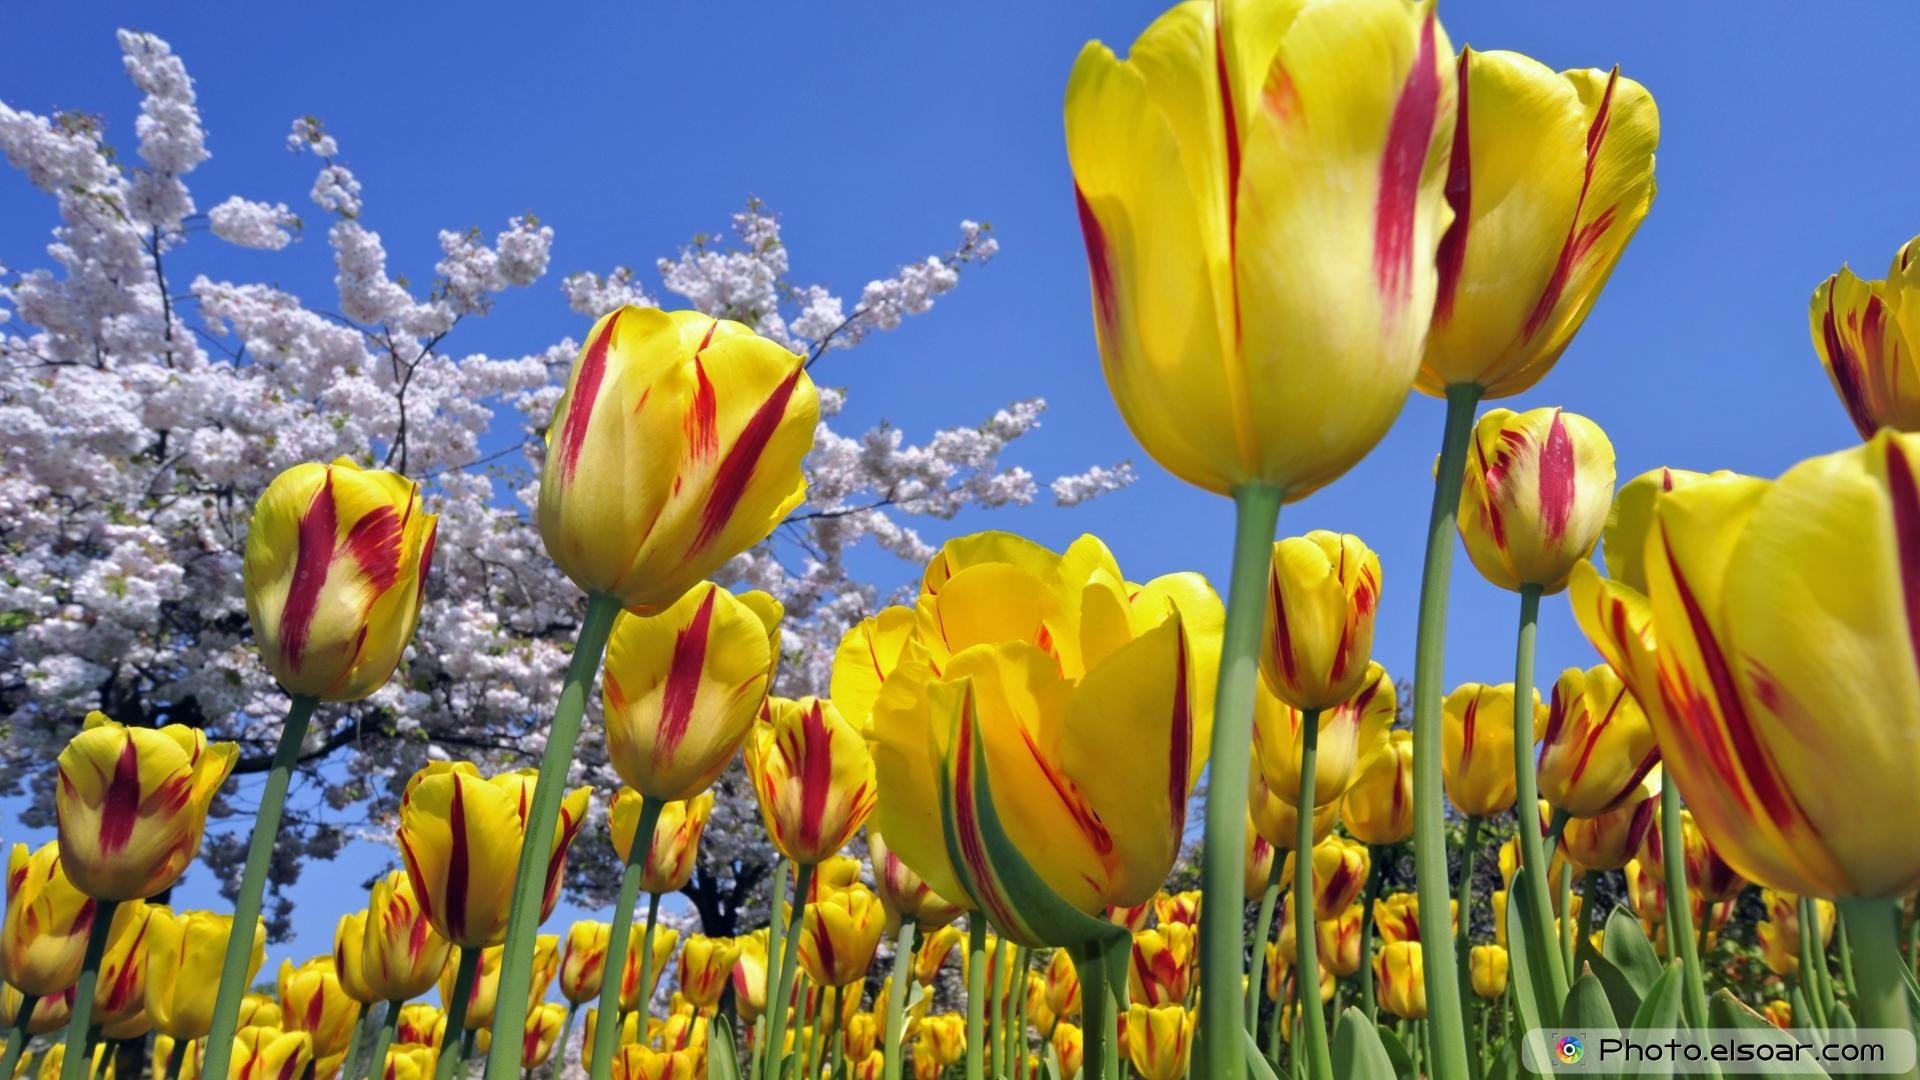 Hd wallpaper yellow flowers - A Large Amount Of Yellow Flowers Hd Full Free Wallpaper